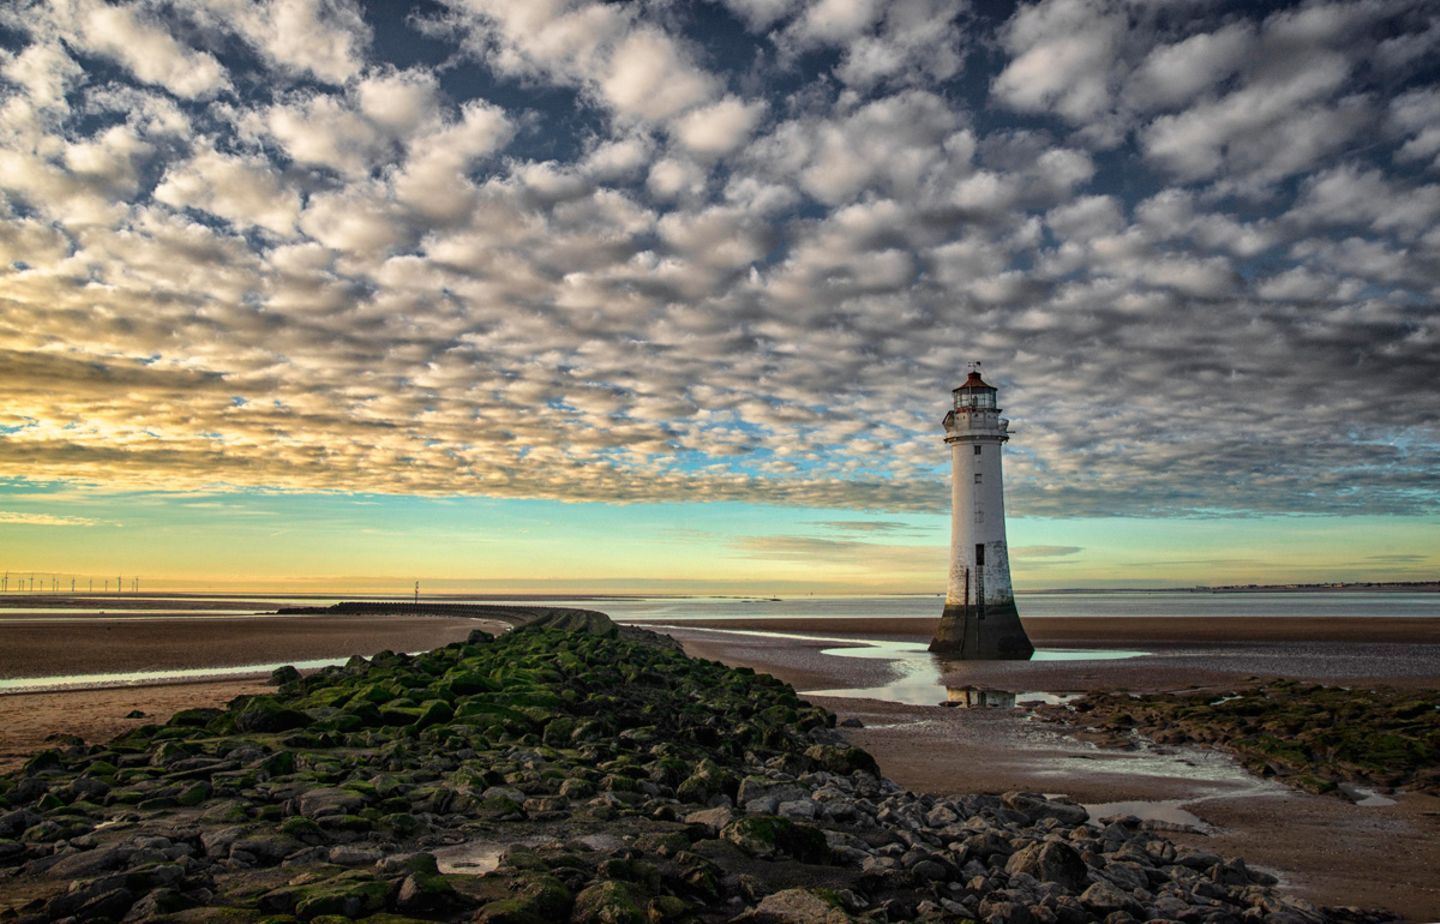 Steve Carr / Weather Photographer of the Year 2019